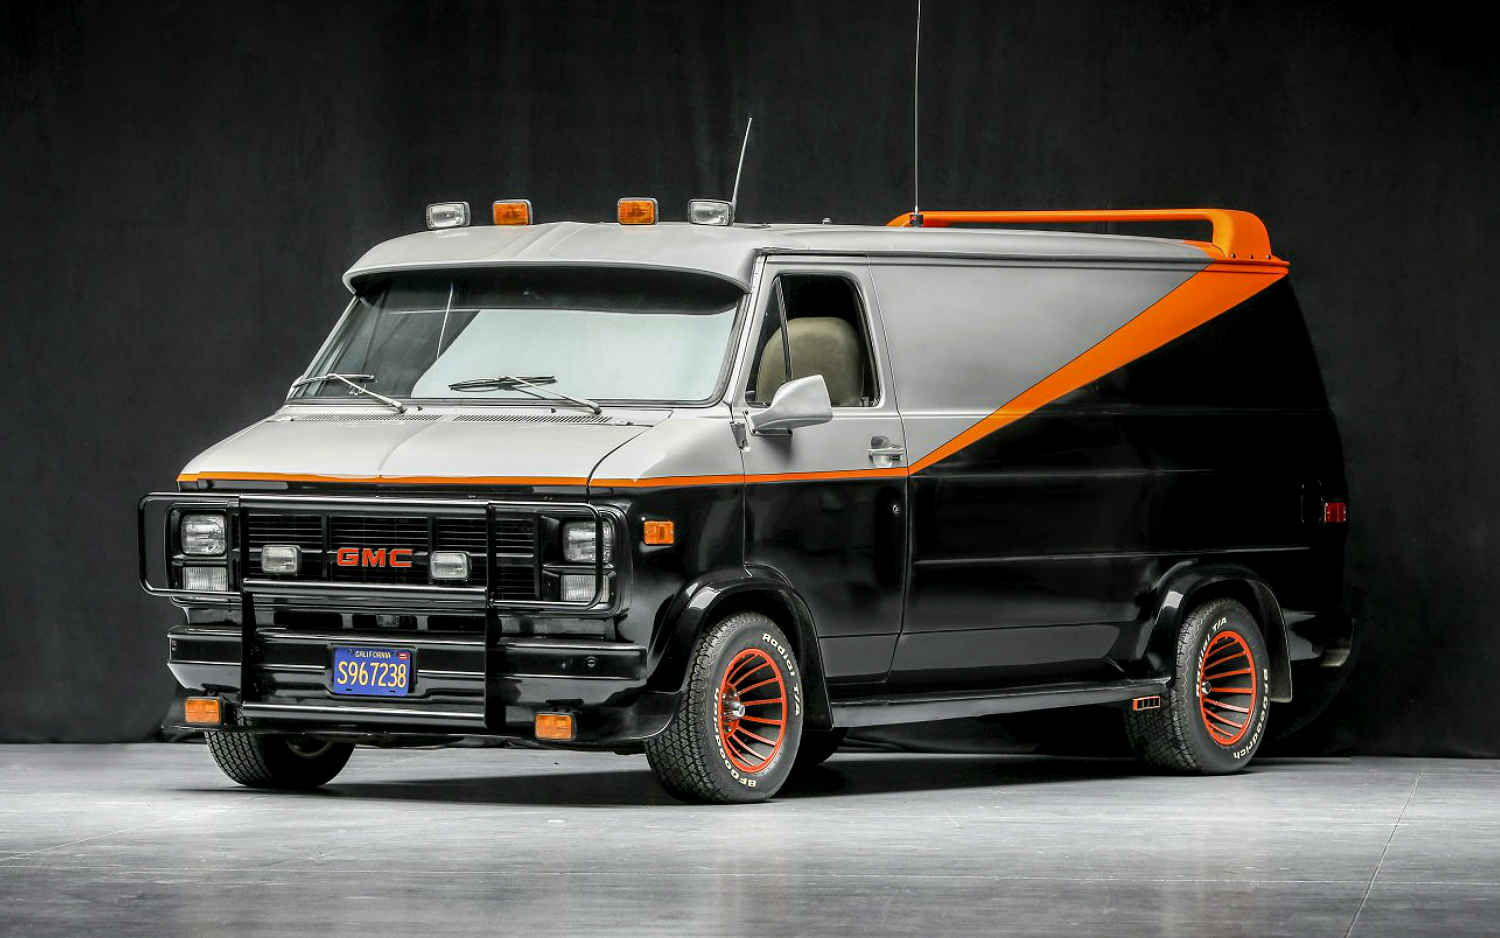 1979 Chevrolet 'A-Team' Van